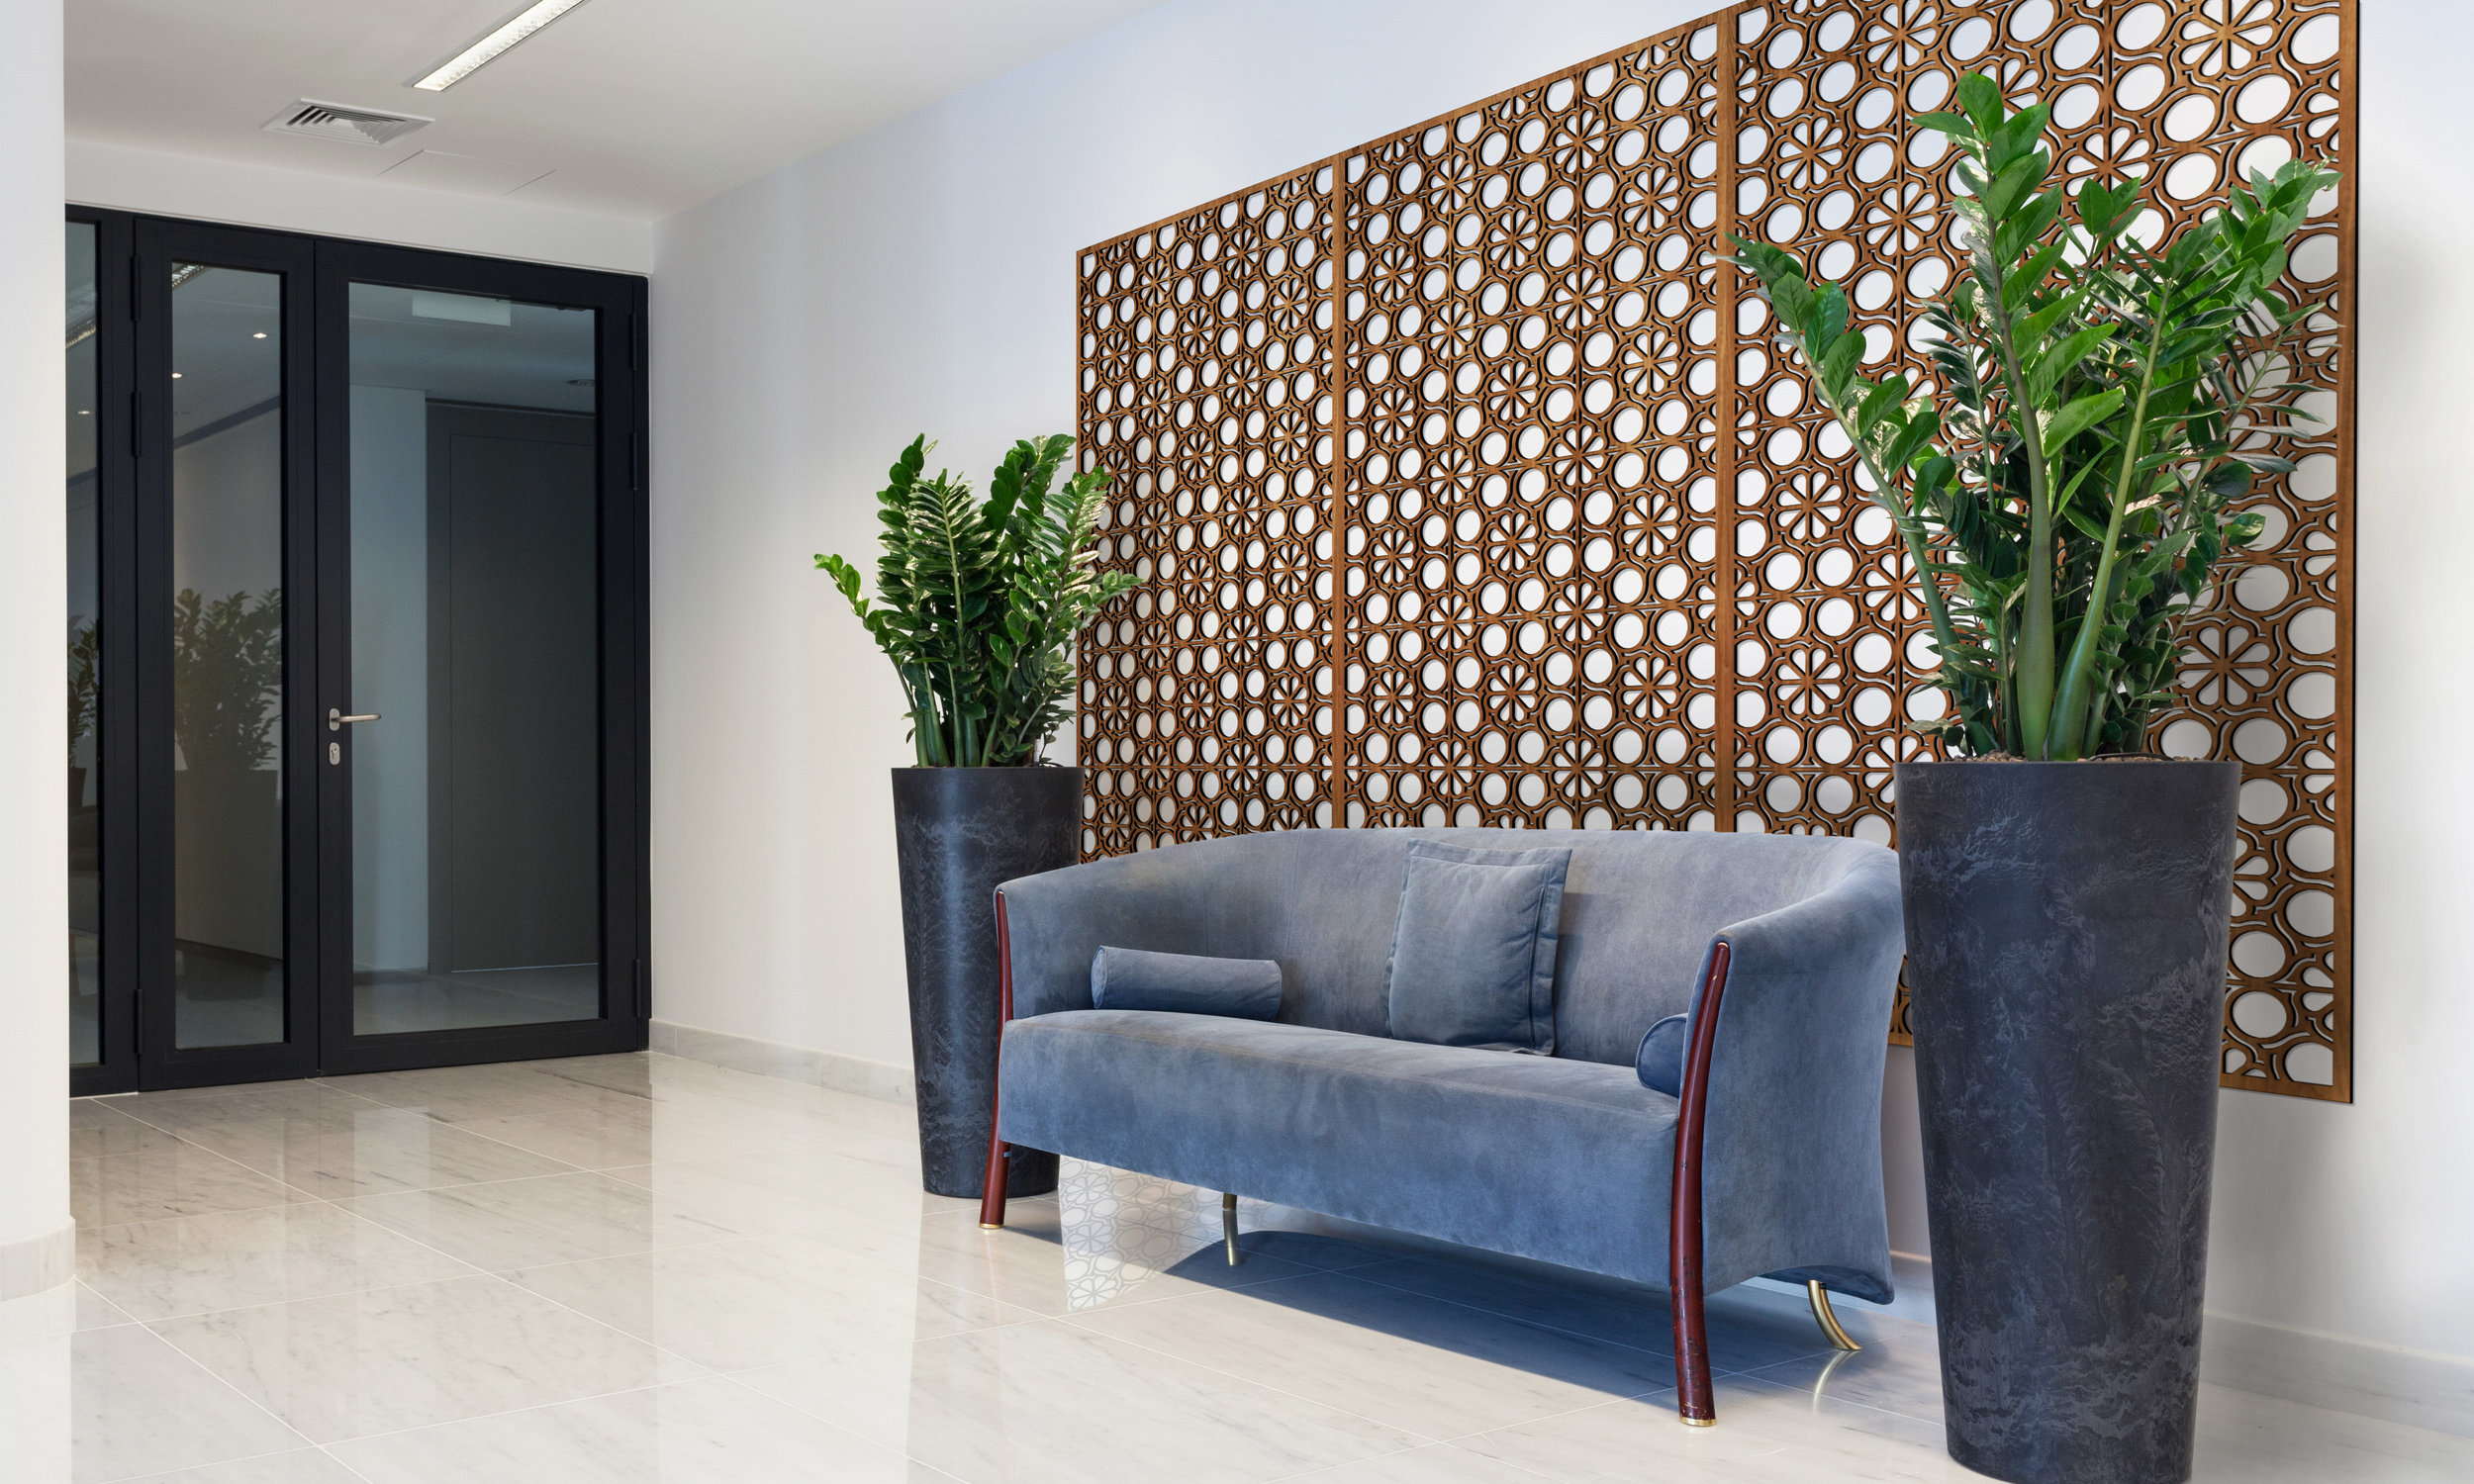 Installation Rendering A   Flower Circles decorative office wall panel - shown in Cherry